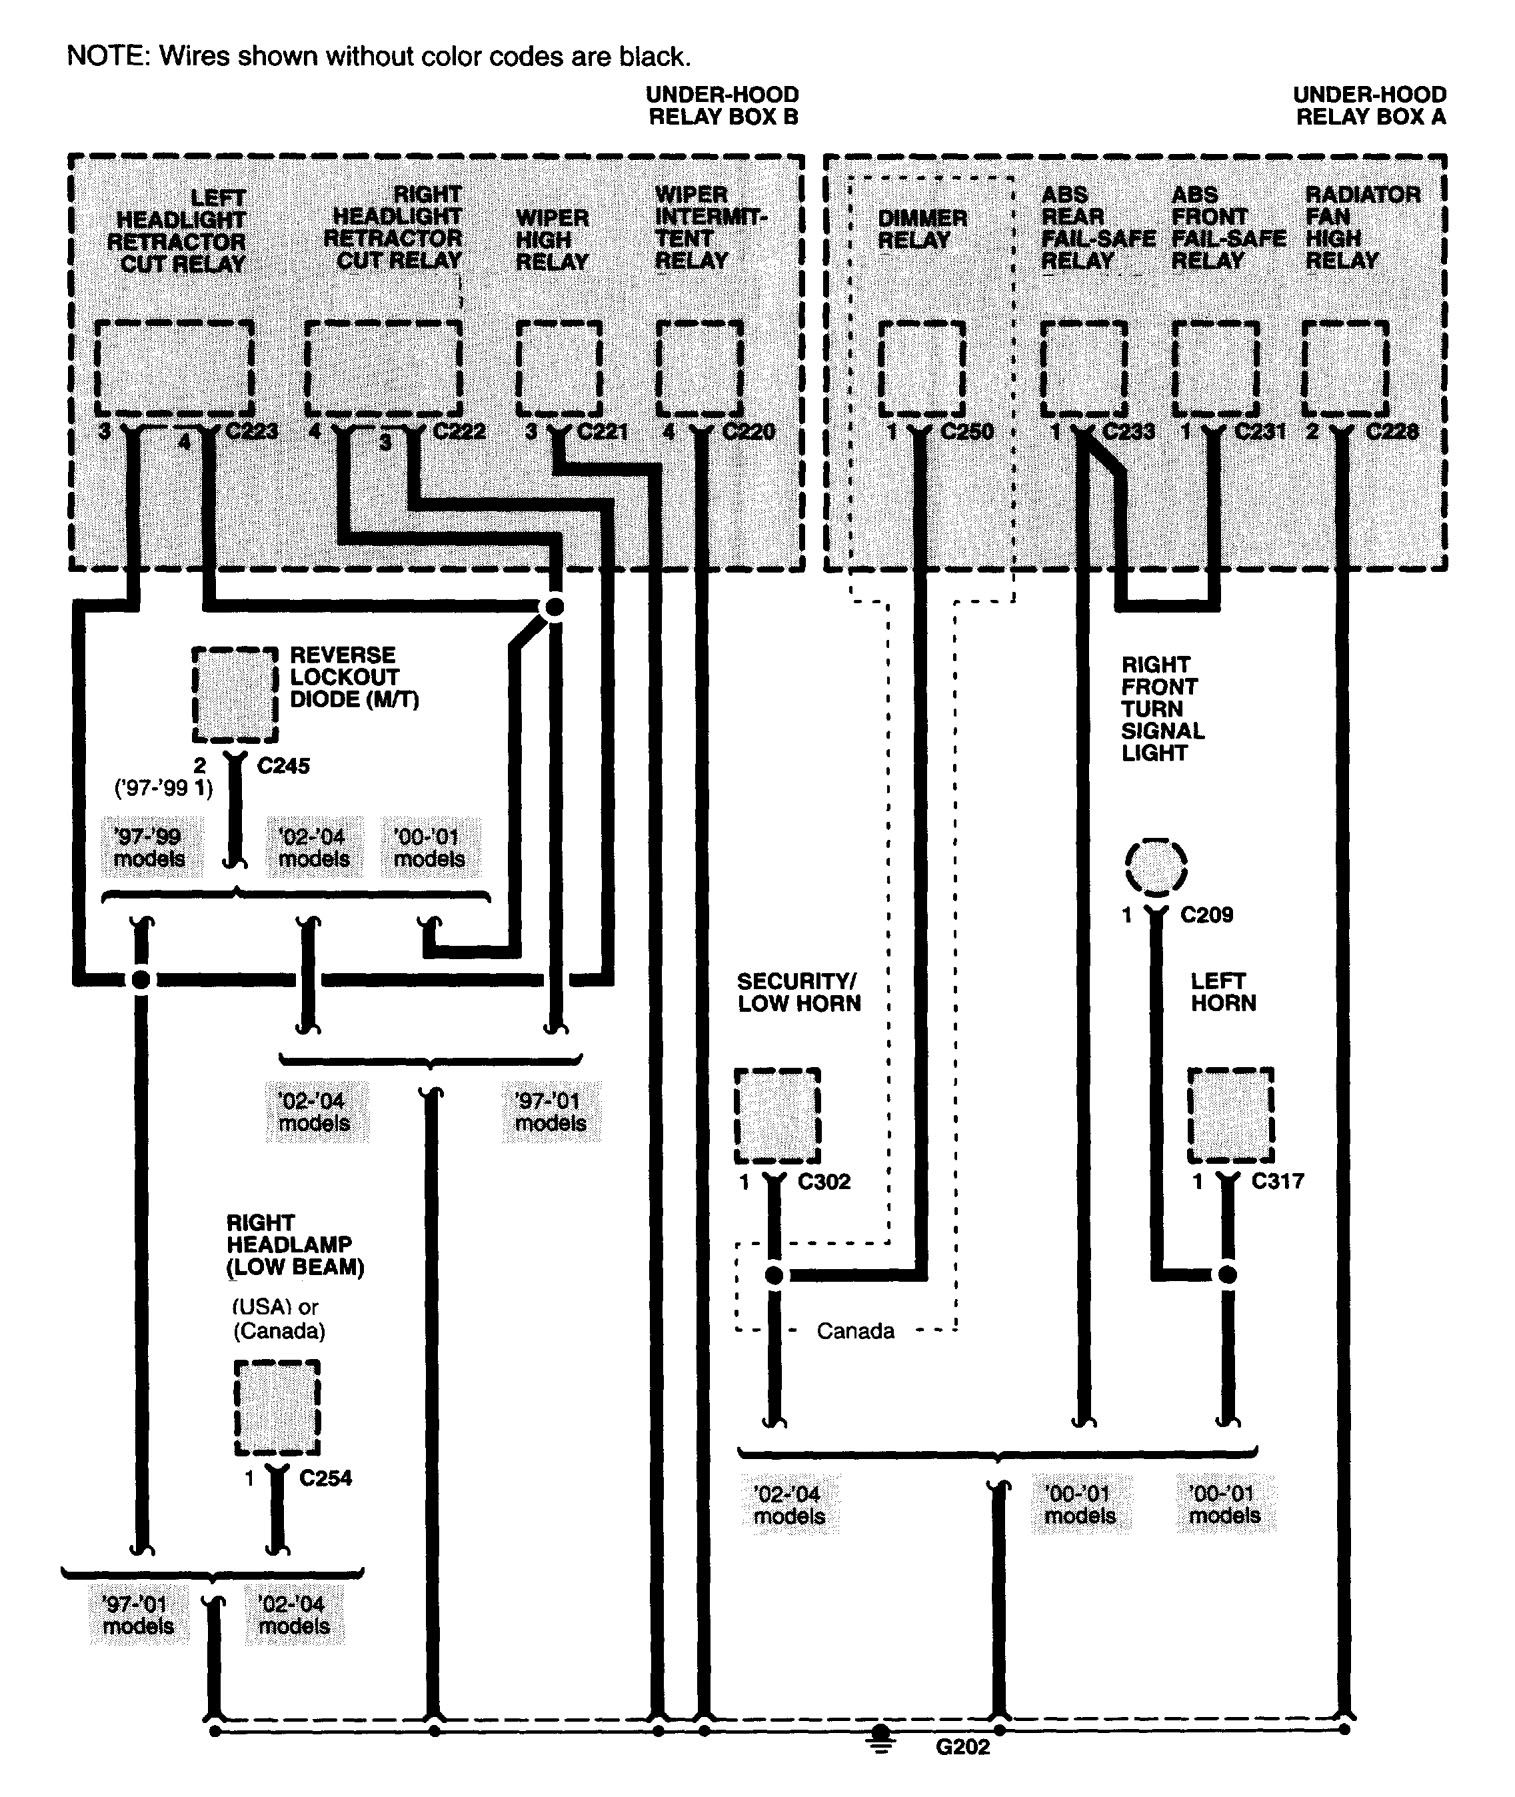 Acura NSX (1997 - 2004) - wiring diagrams - grand ... on